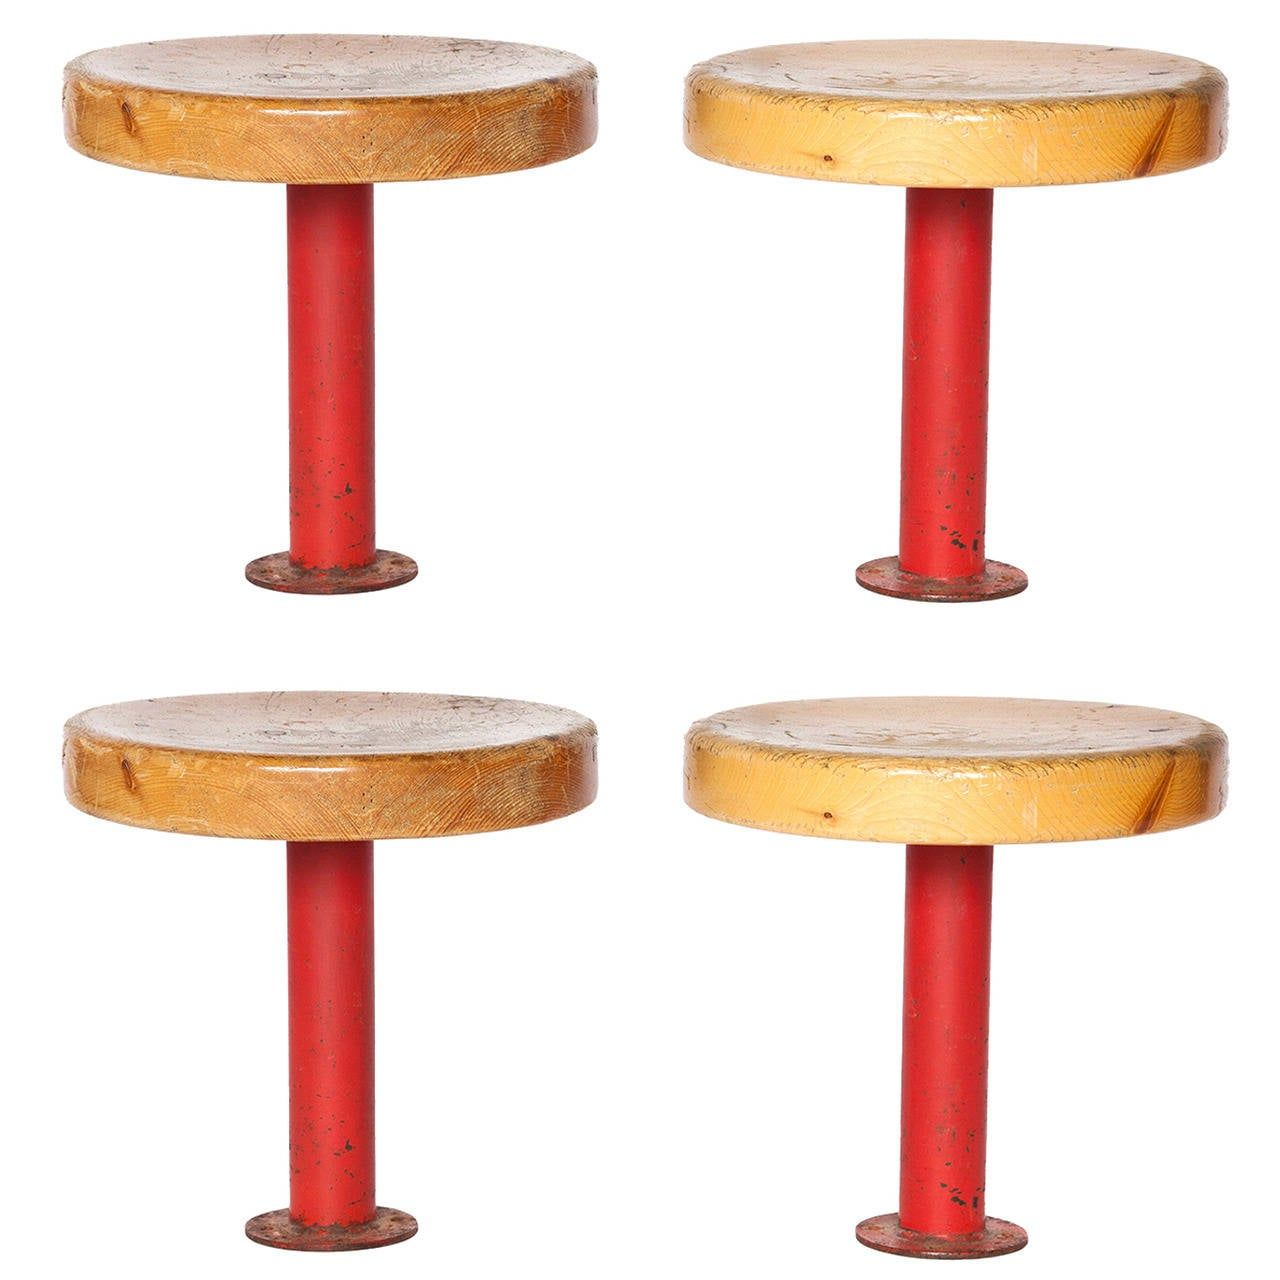 Pair of Kindergarten Stools from Les Arcs by Charlotte Perriand 1